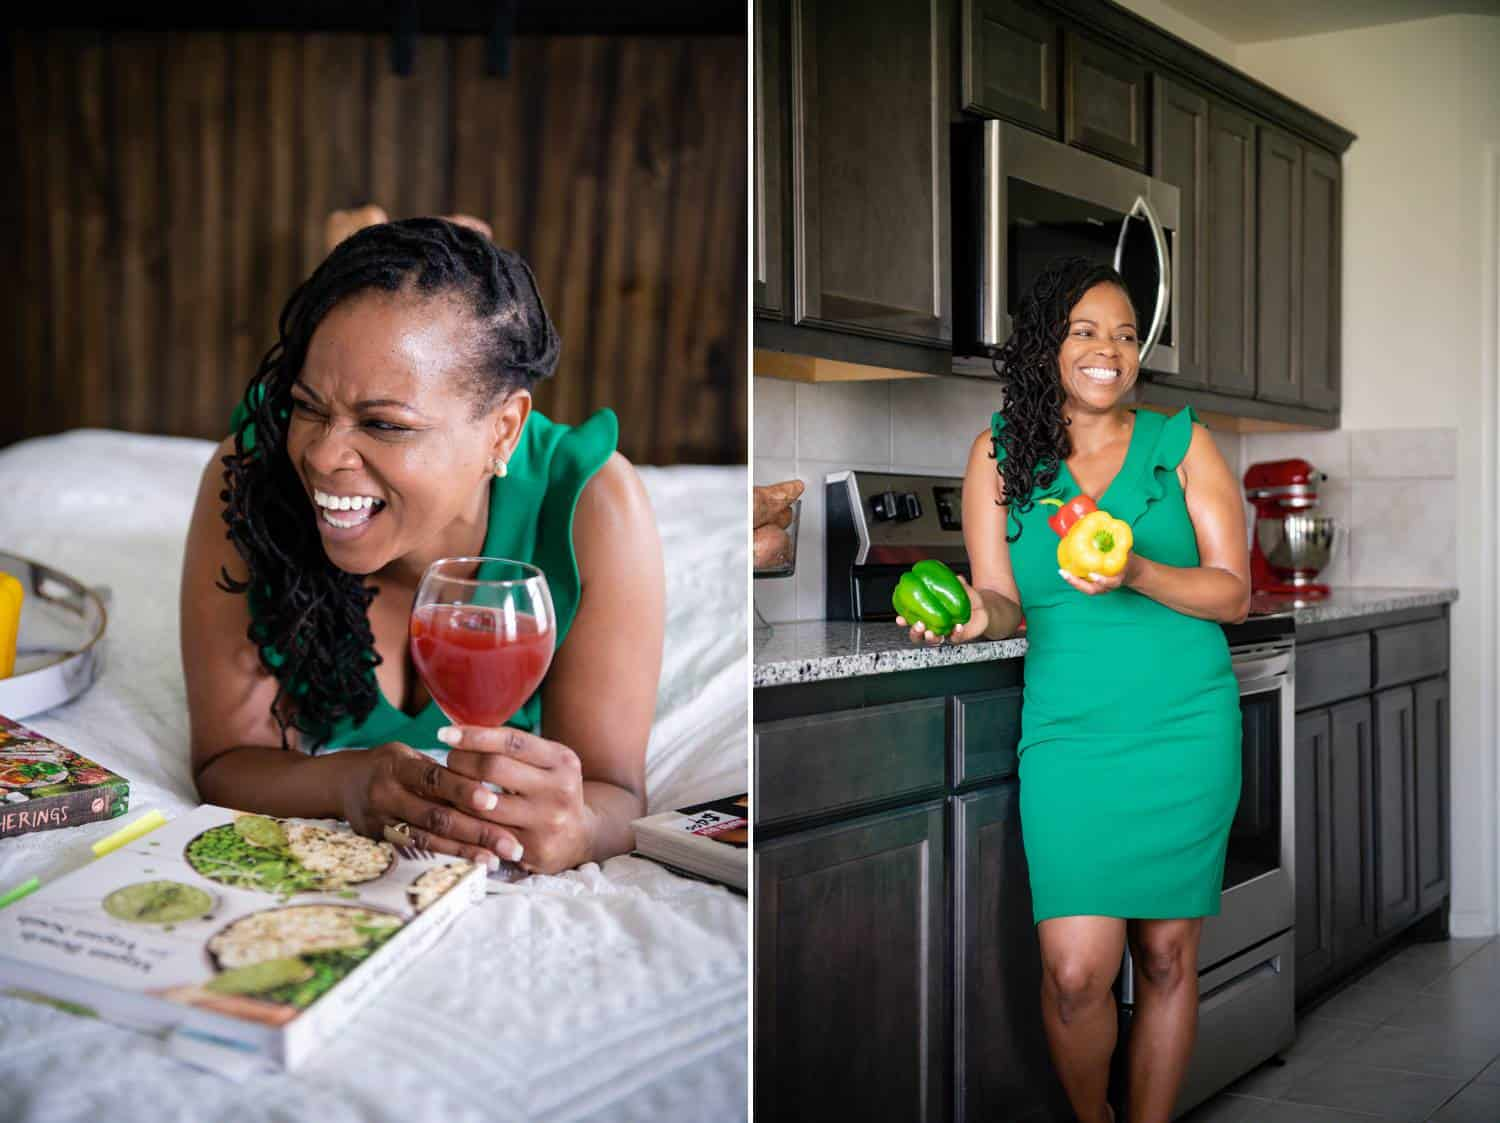 Two side-by-side photos depict a Black woman in a sleeveless, emerald green minidress. On the left, the woman lies on her stomach on a white bed holding a wine glass that contains a deep red fruit drink. She is laughing and looking through a magazine. On the right, th esame woman stands in a modern kitchen holding fresh peppers.